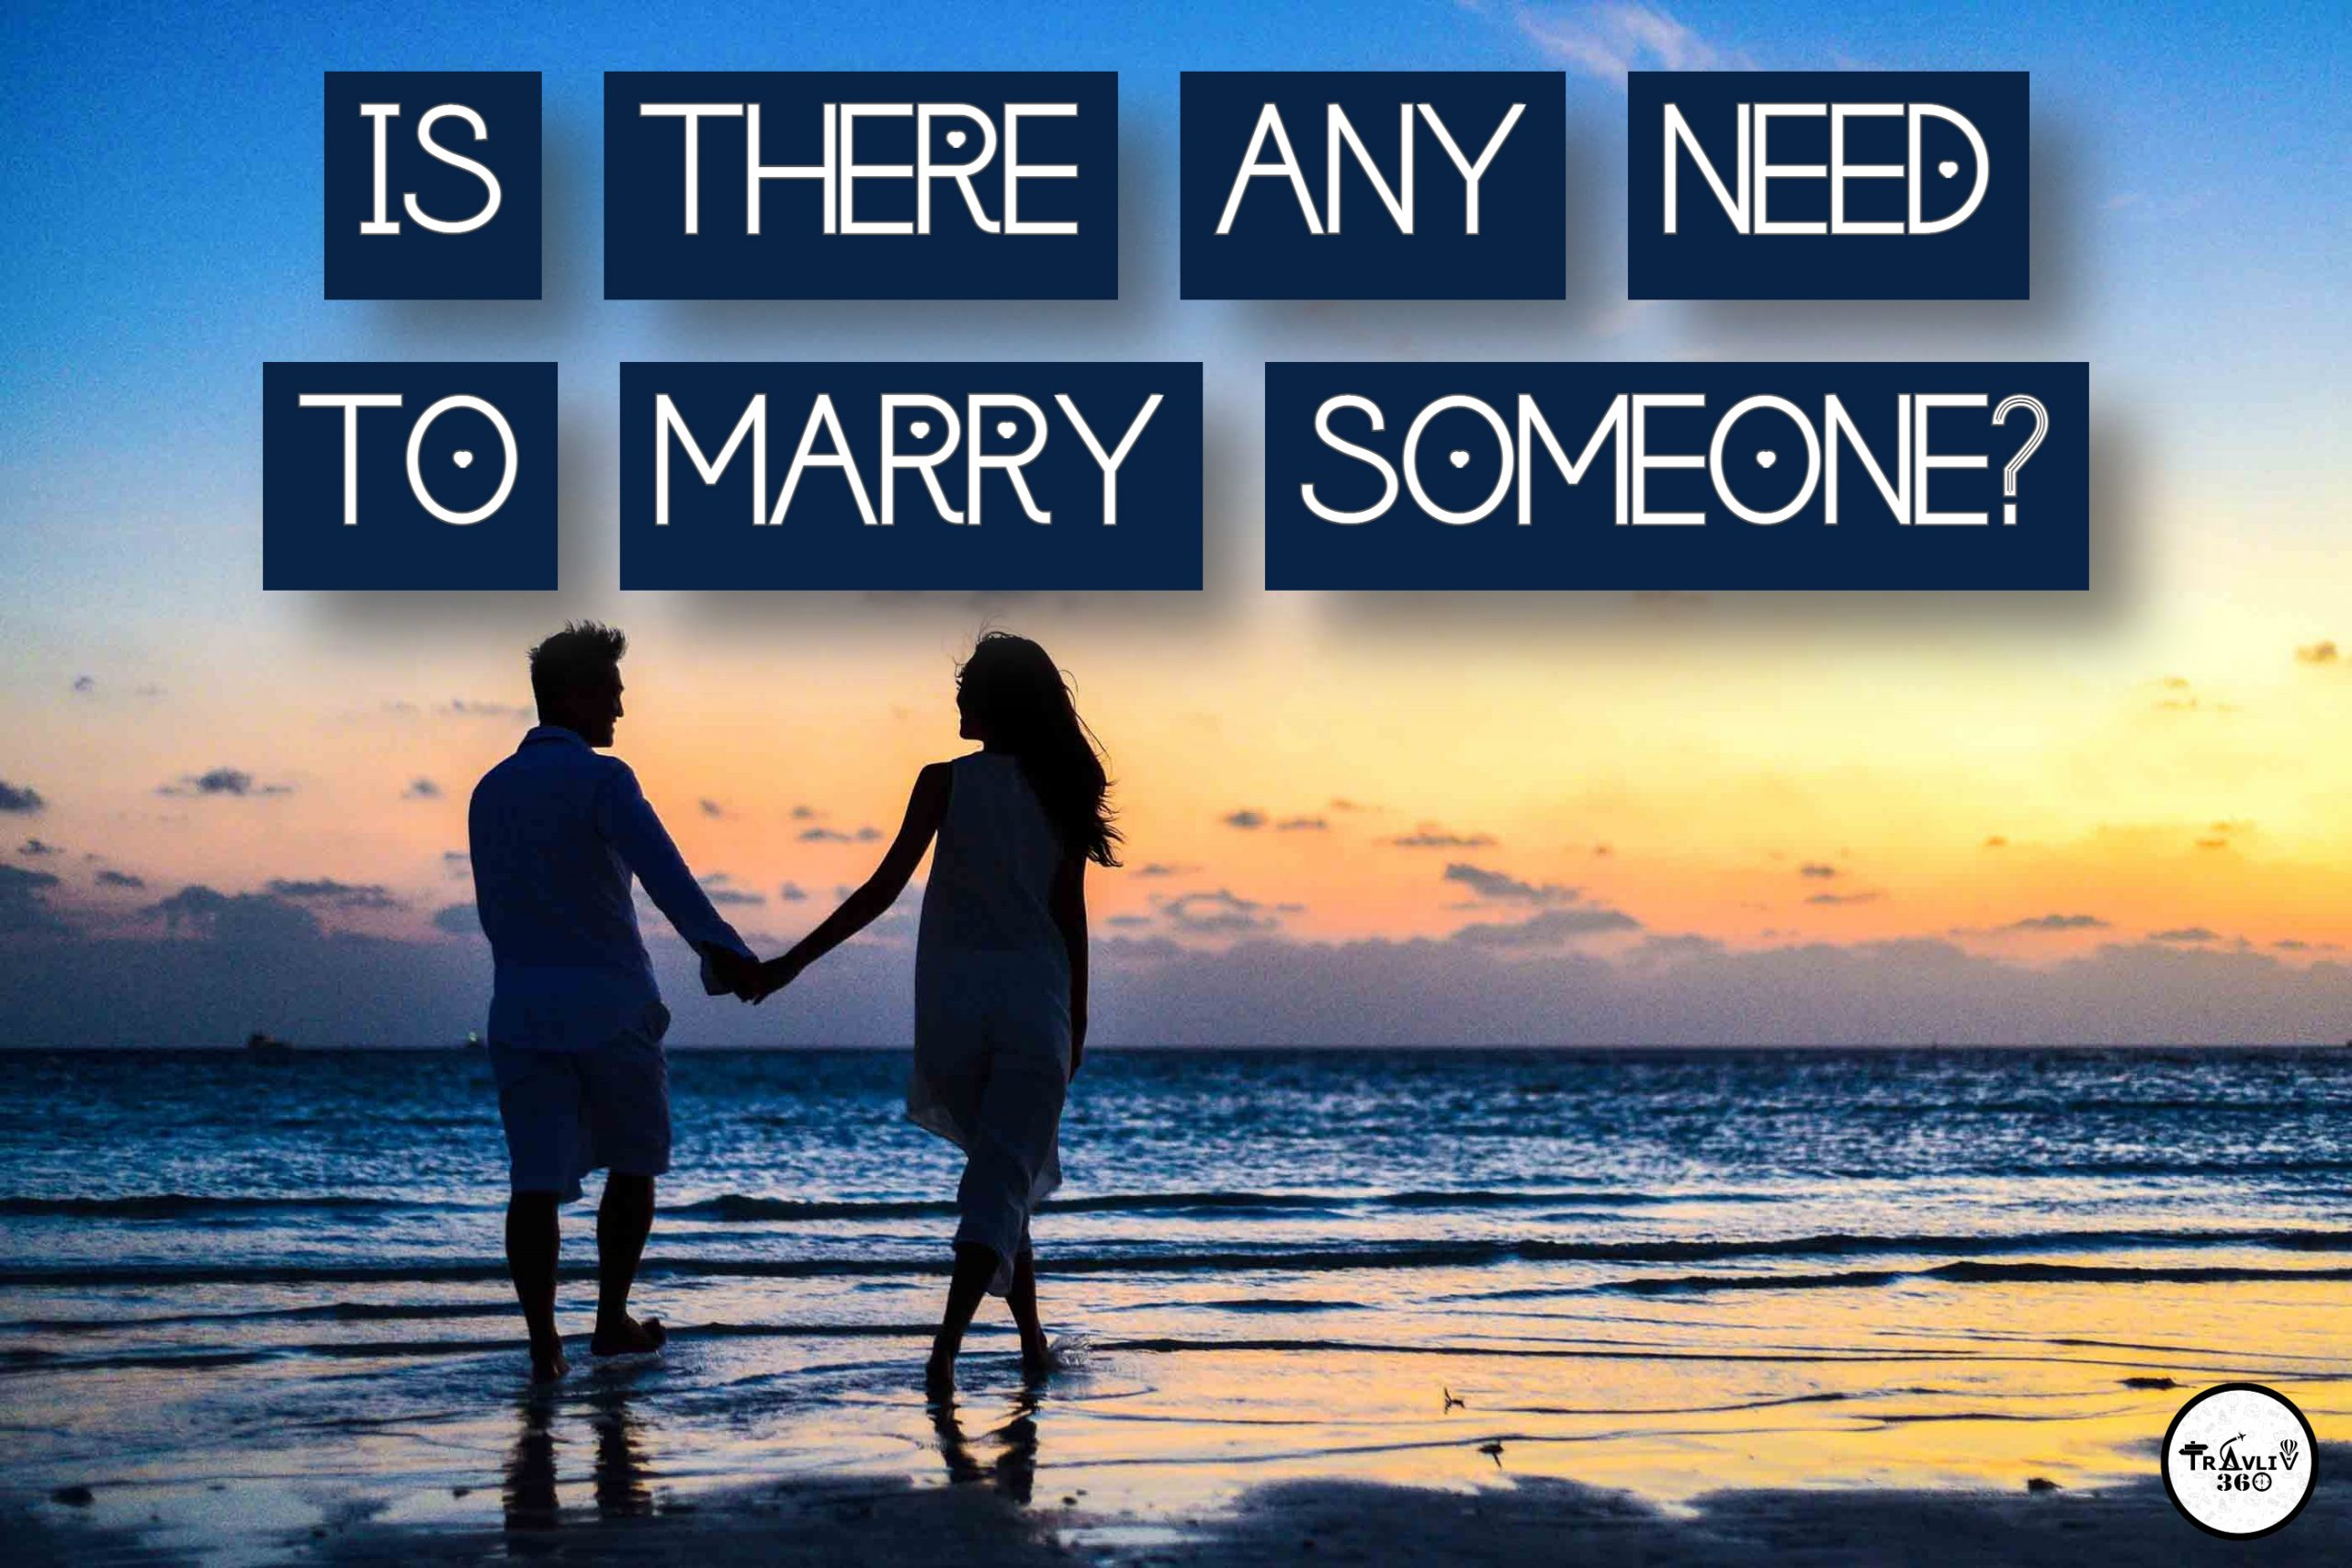 IS THERE ANY NEED TO MARRY SOMEONE?